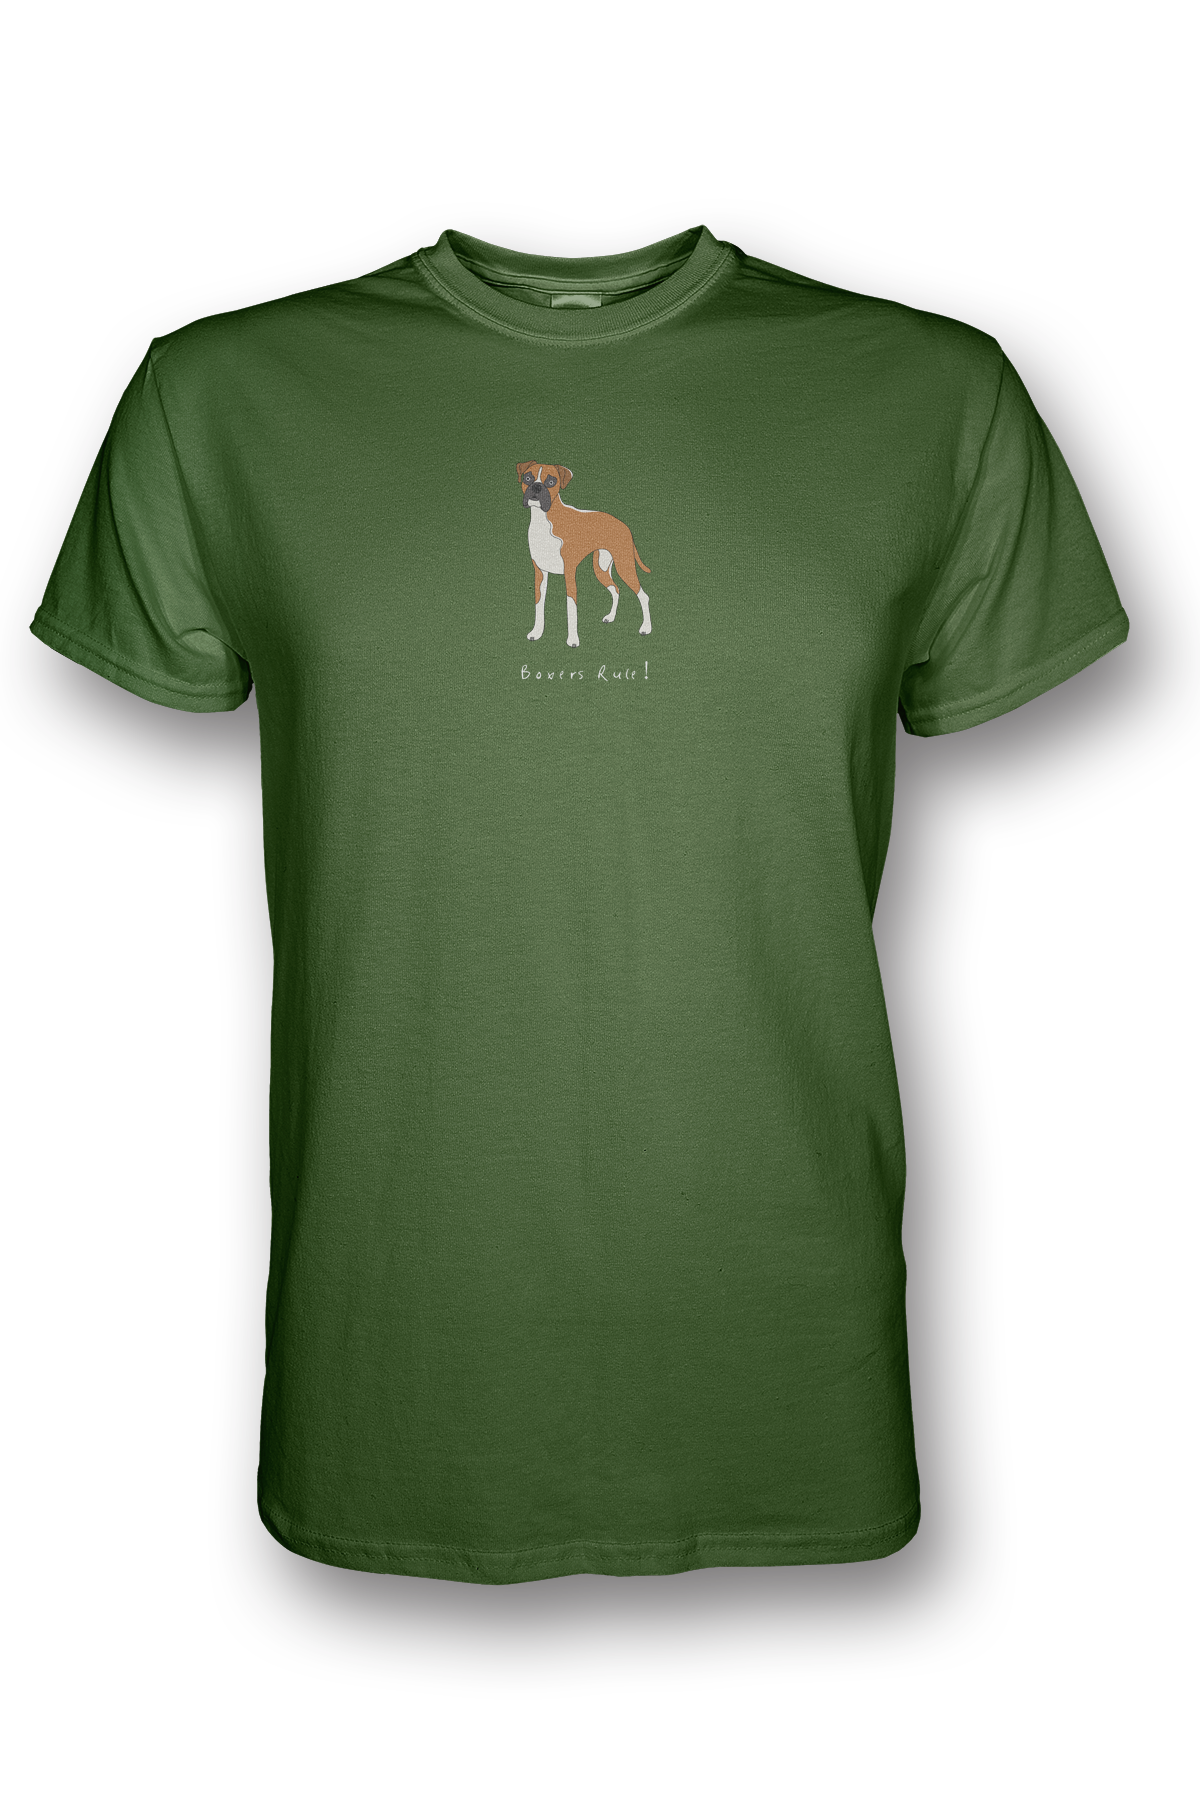 Mens Crew Neck T-Shirt - Boxers Rule! Green Apple